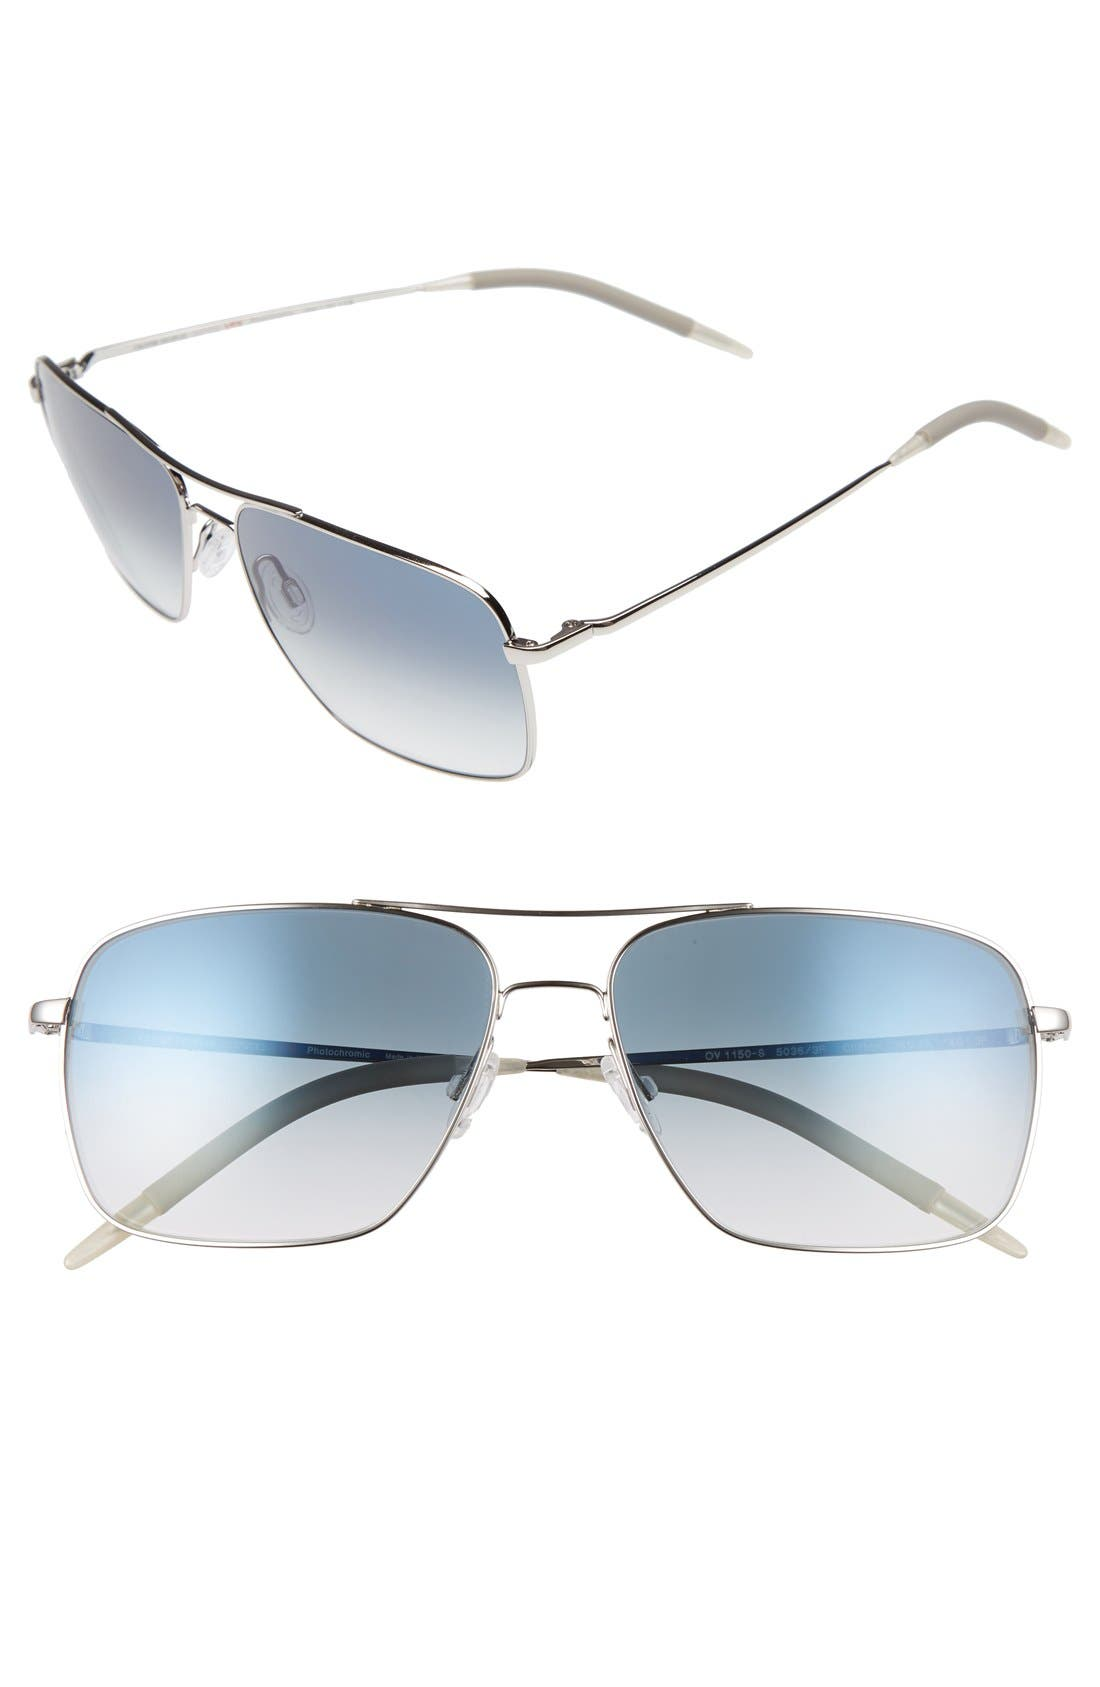 Clifton 58mm Aviator Sunglasses,                         Main,                         color, SILVER